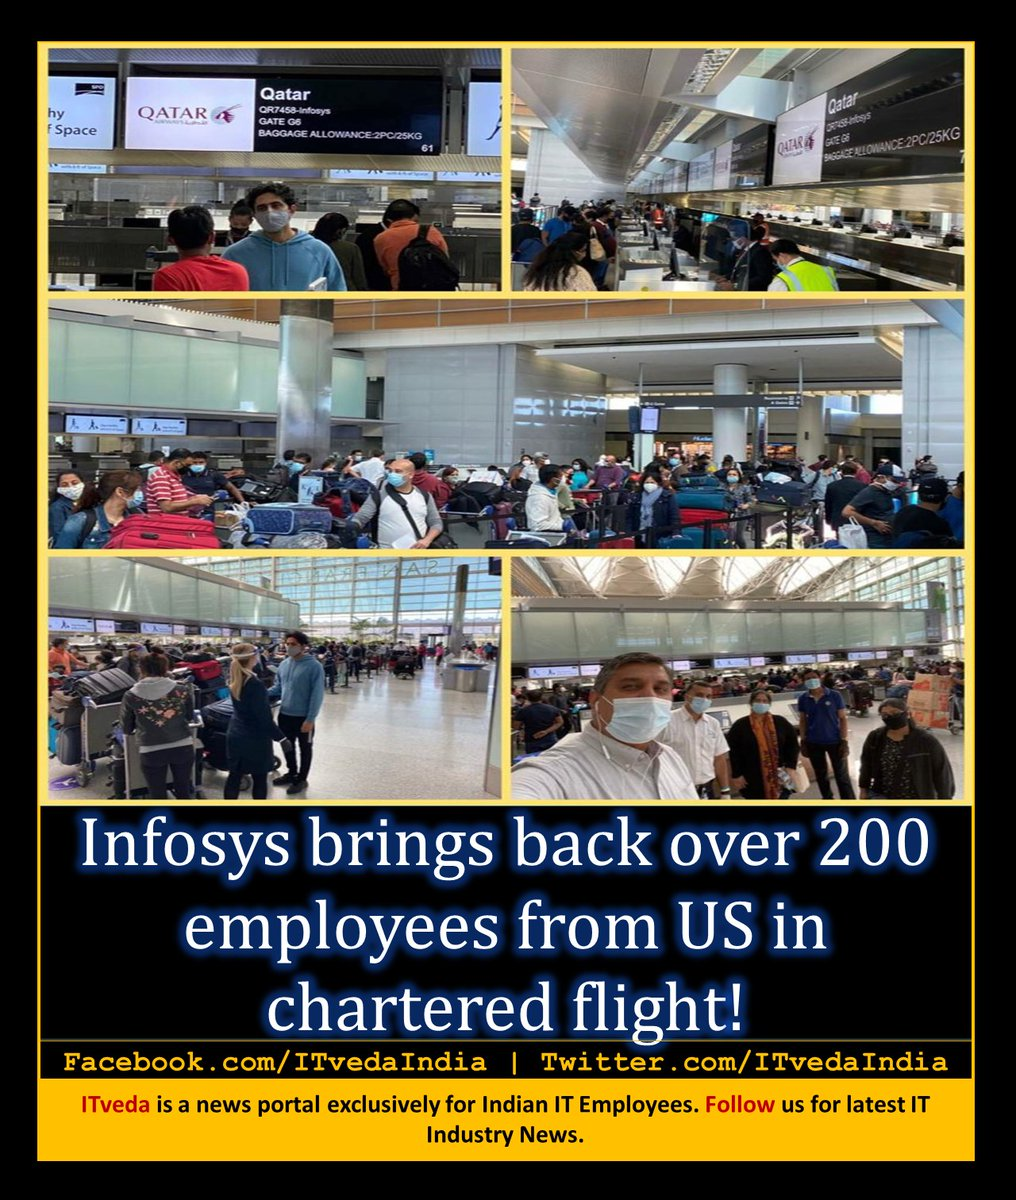 #Infosys brings back over 200 employees from #US in chartered flight!  #Like our page for latest IT Industry News. pic.twitter.com/VtauZQWojH